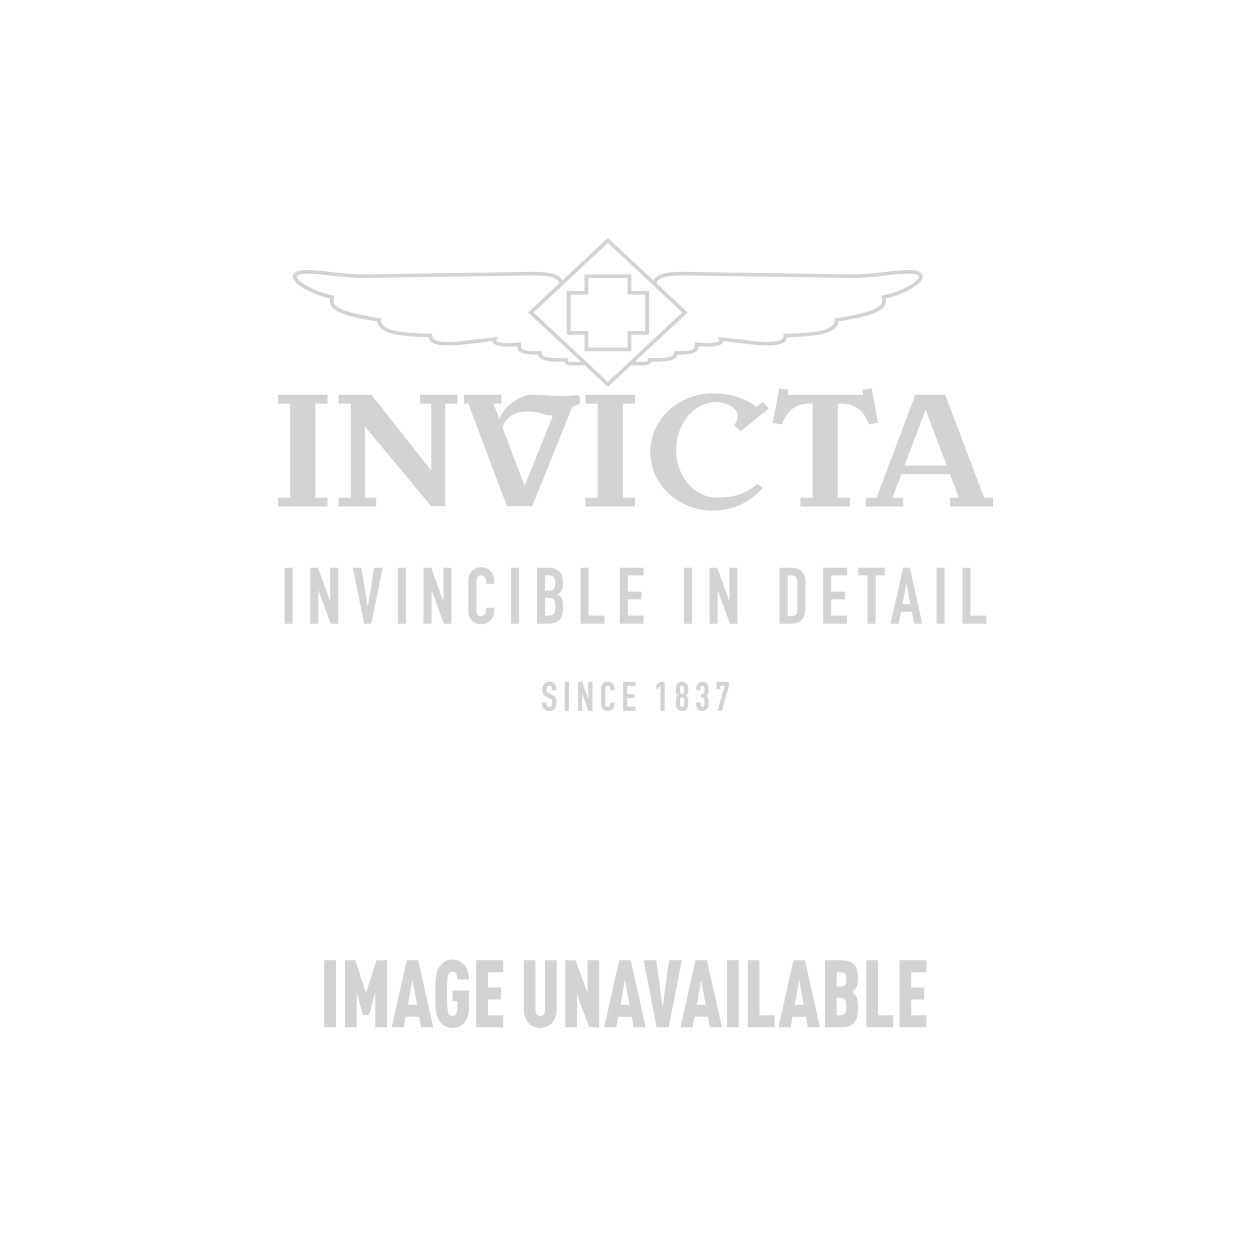 Invicta Bolt Swiss Made Quartz Watch - Black, Stainless Steel case with Steel, Black tone Stainless Steel, Polyurethane band - Model 90026